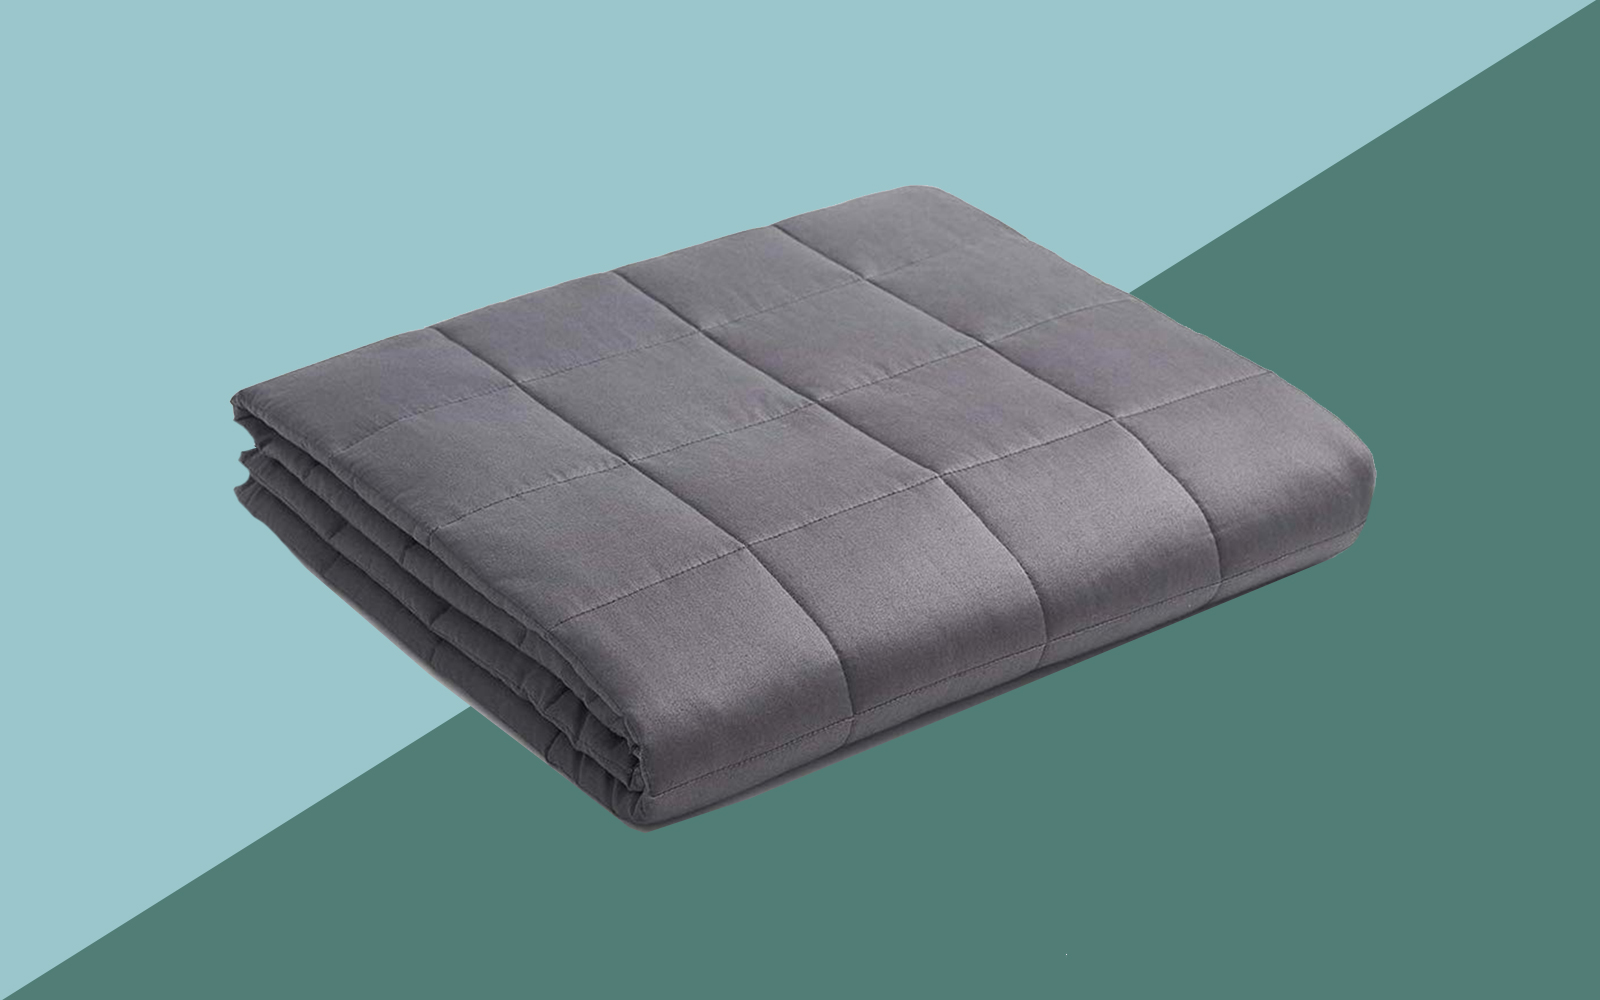 YnM Weighted Blanket for Couple, 20 lbs Tout